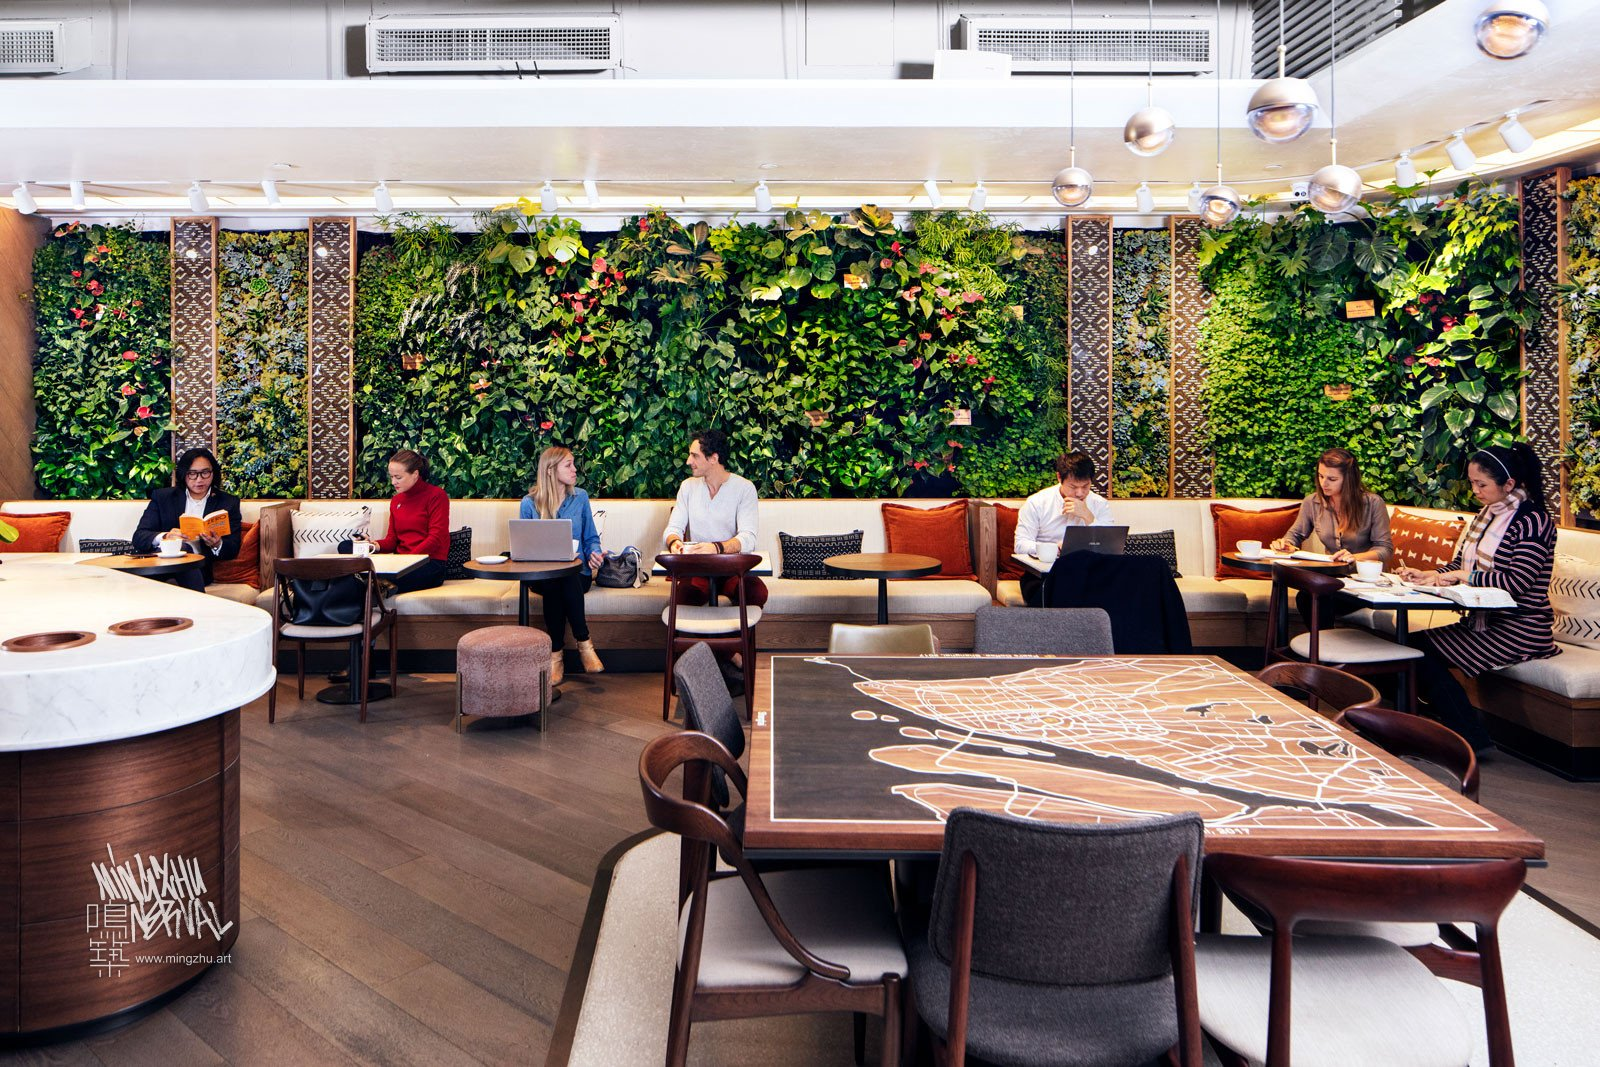 Mingzhu Nerval vertical living wall experts - vertical living green wall for Peet's Coffee Flagship, 2017